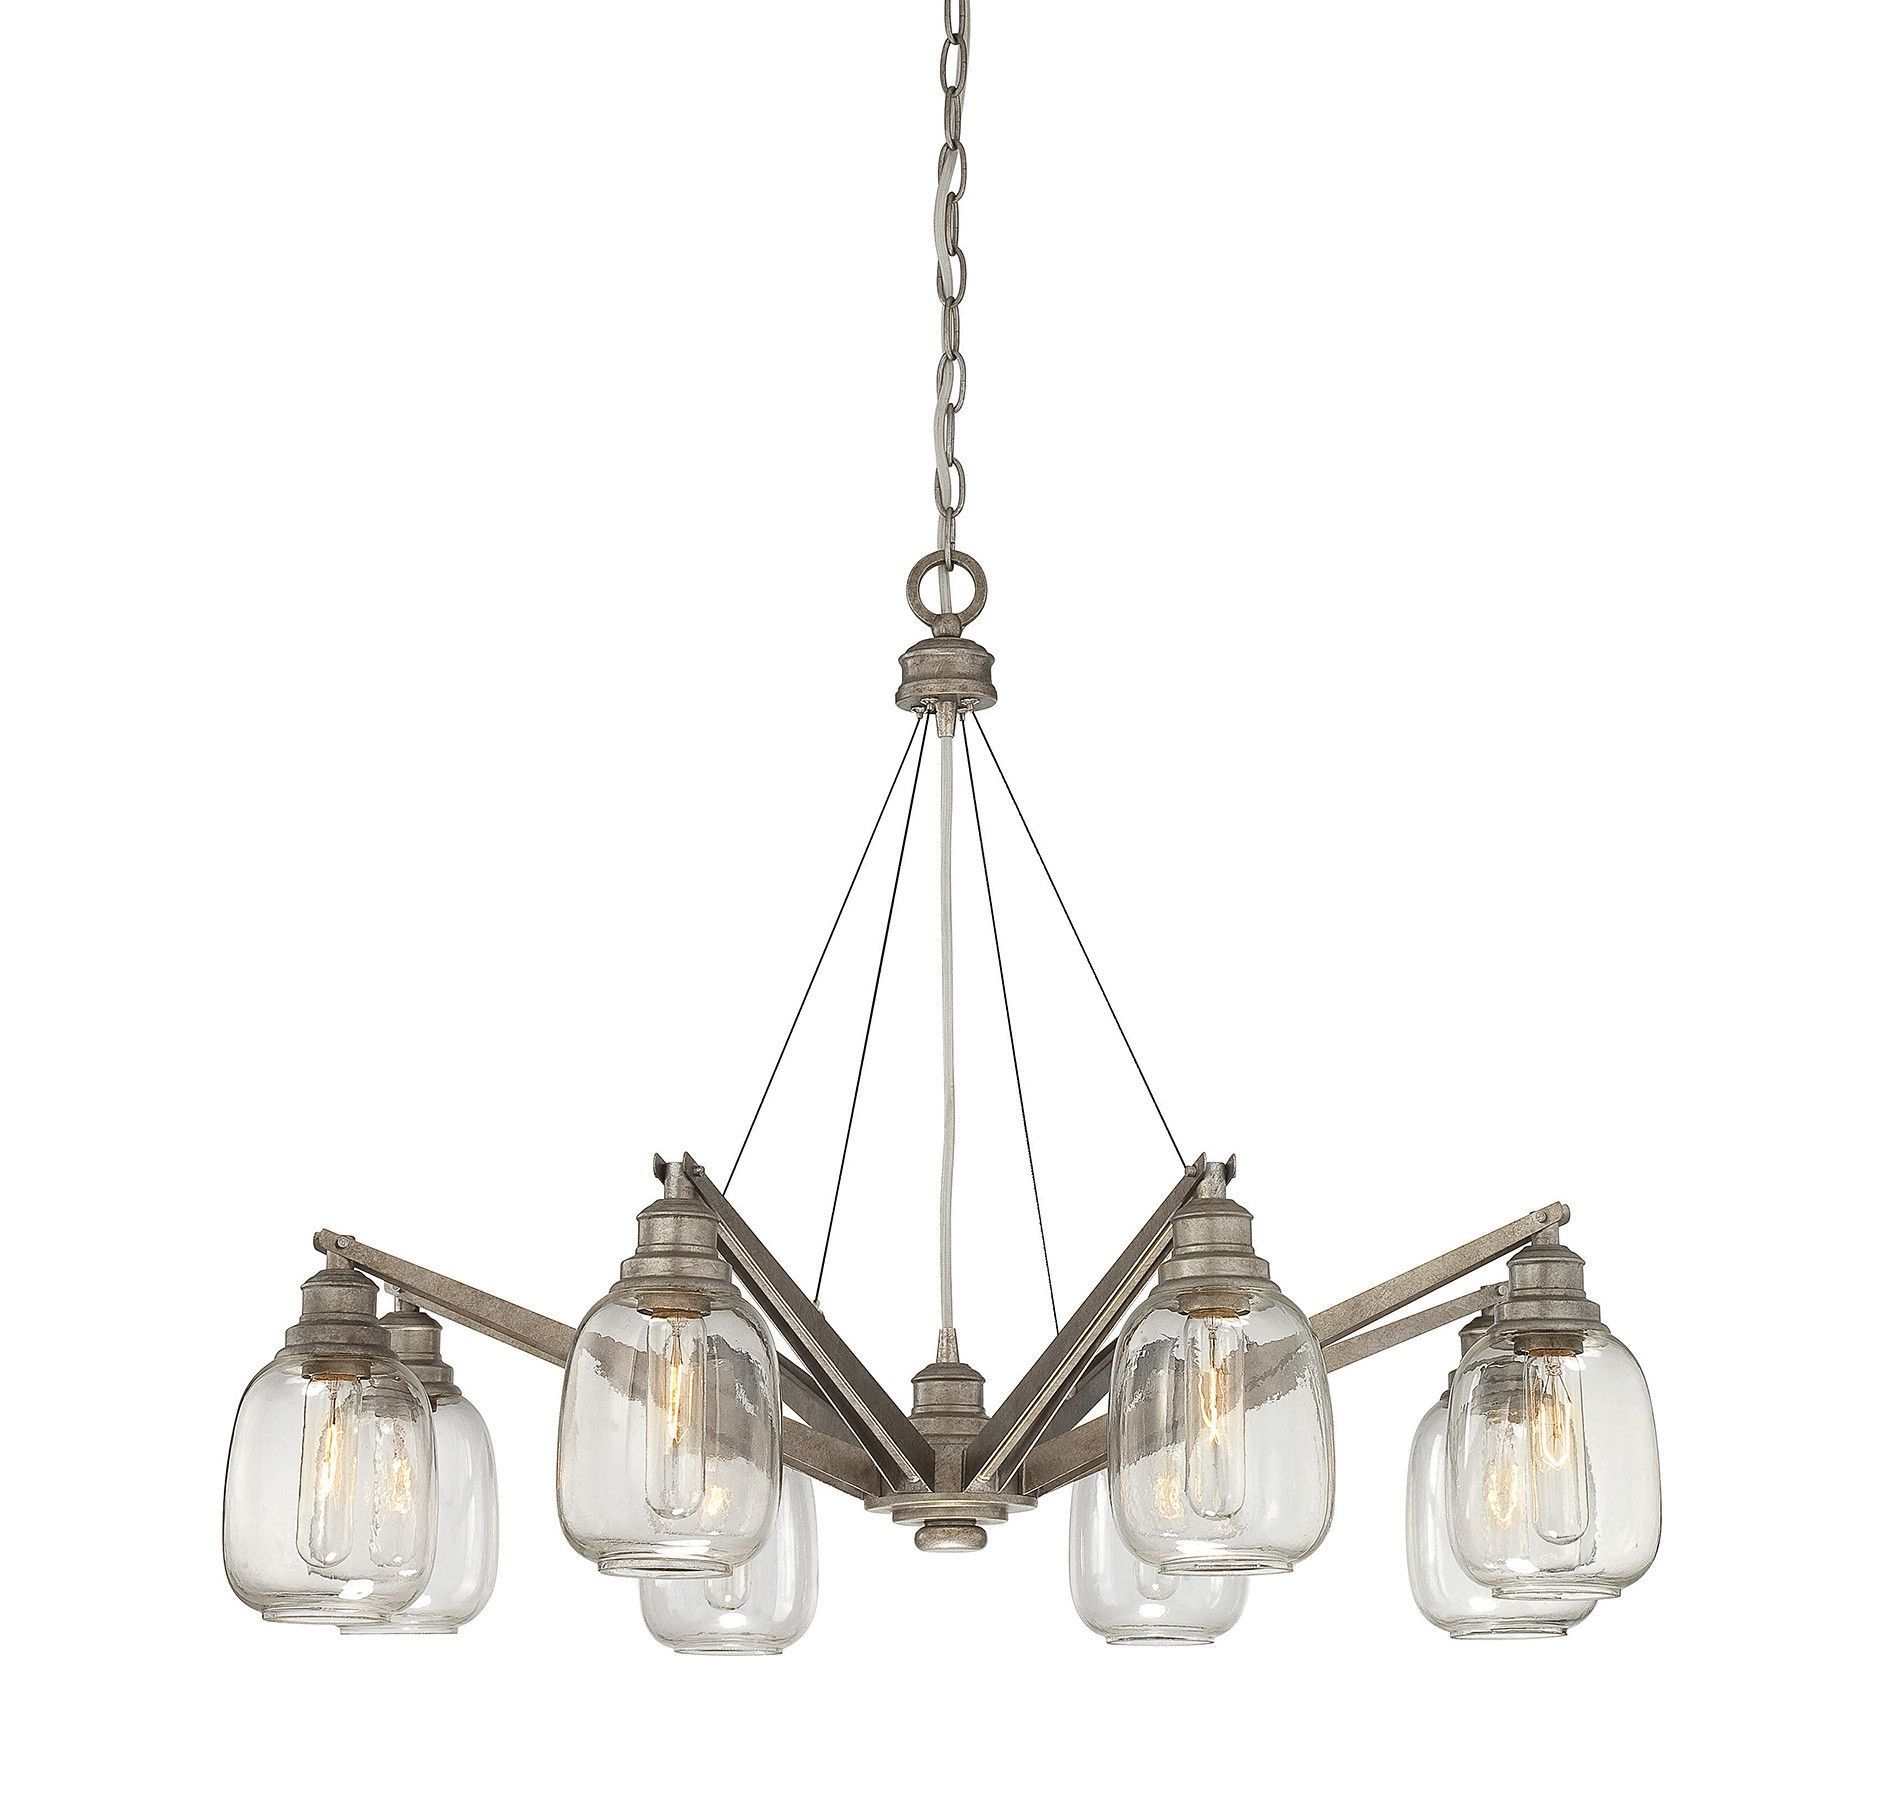 Savoy Orsay 8 Light Chandelier Products Pinterest